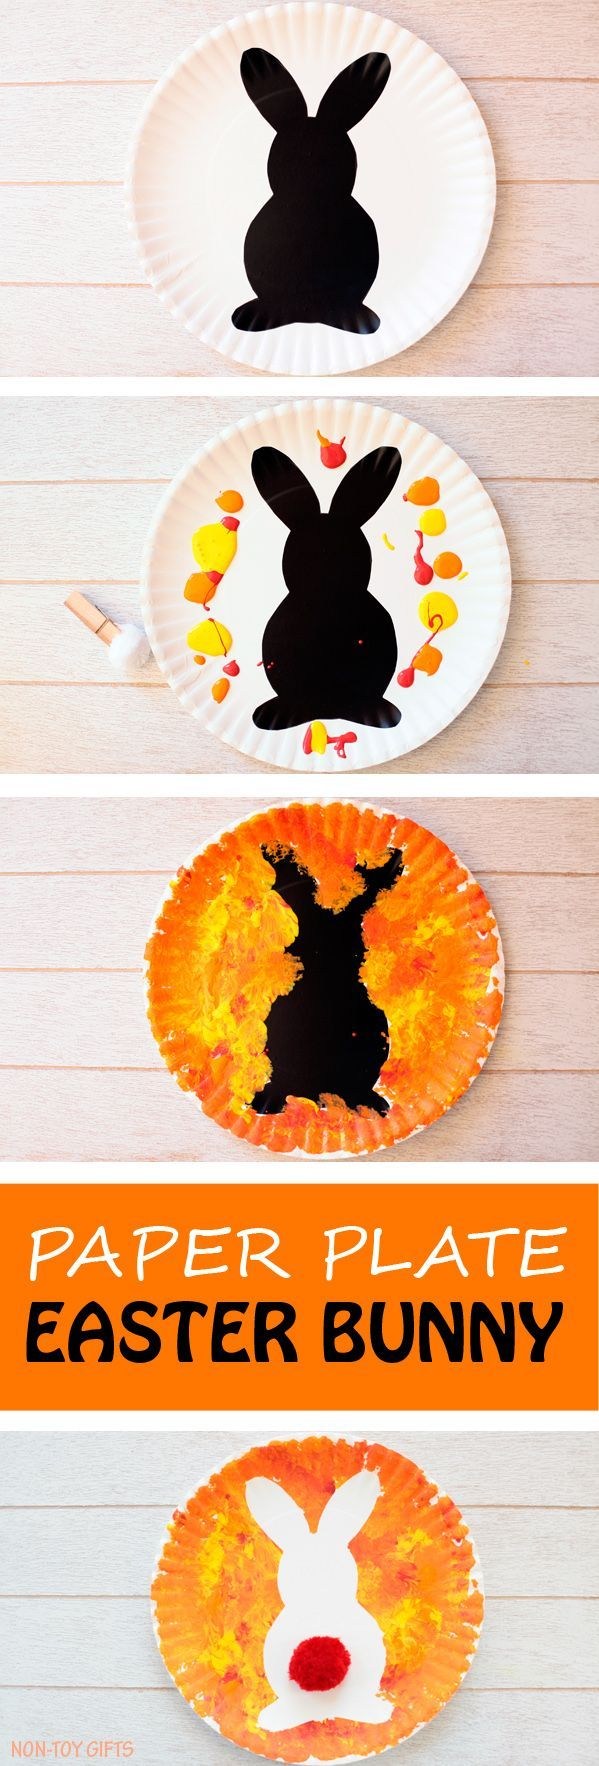 Paper plate Easter bunny craft for kids. Easy art project for toddlers, preschoolers, kindergartners and older kids. It makes a fun DIY Easter decoration. Spring rabbit craft.   at Non-Toy Gifts